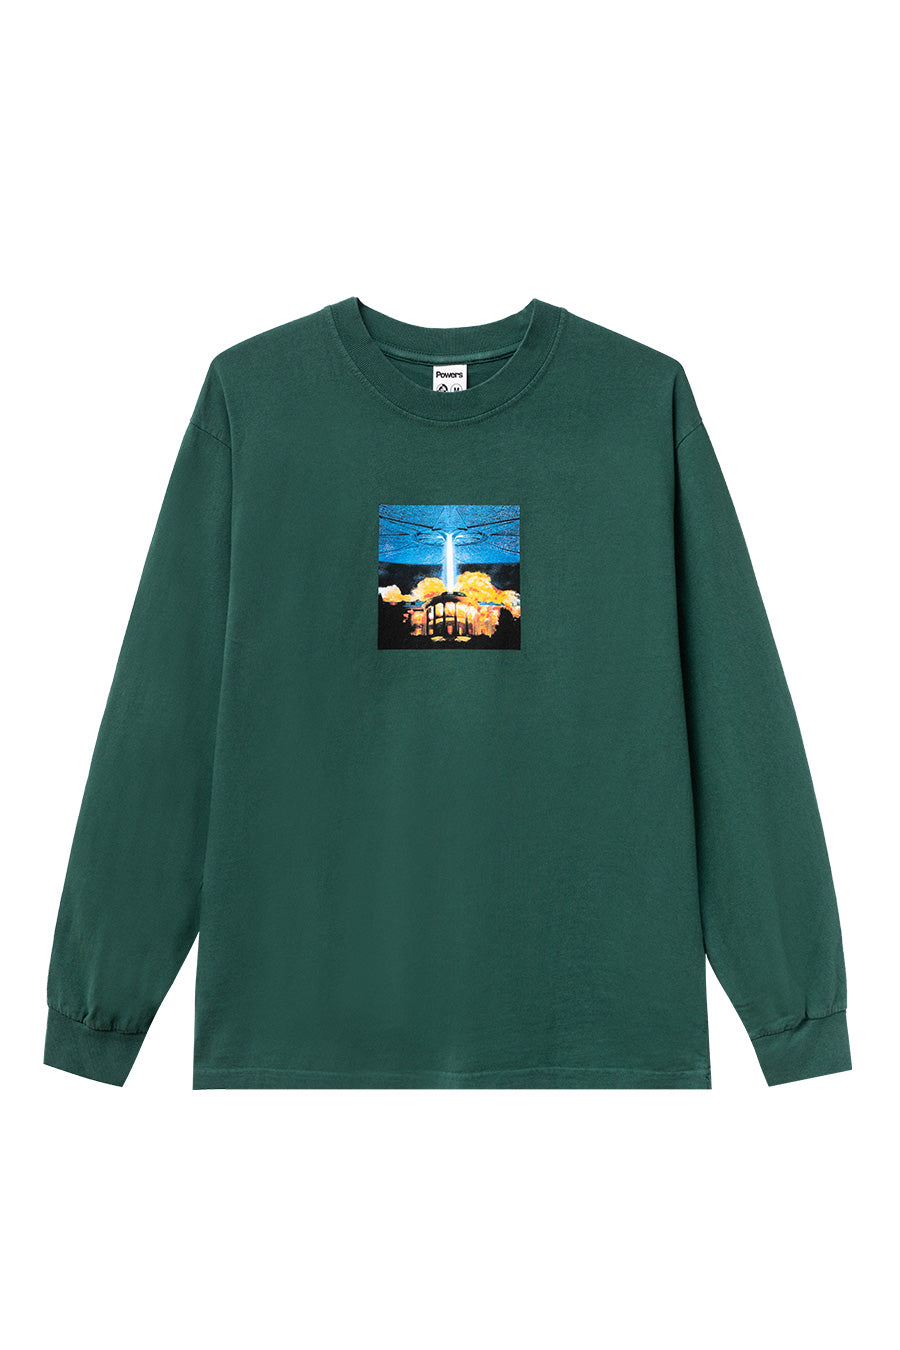 Powers Supply - Green White House Long Sleeve T-Shirt | 1032 SPACE